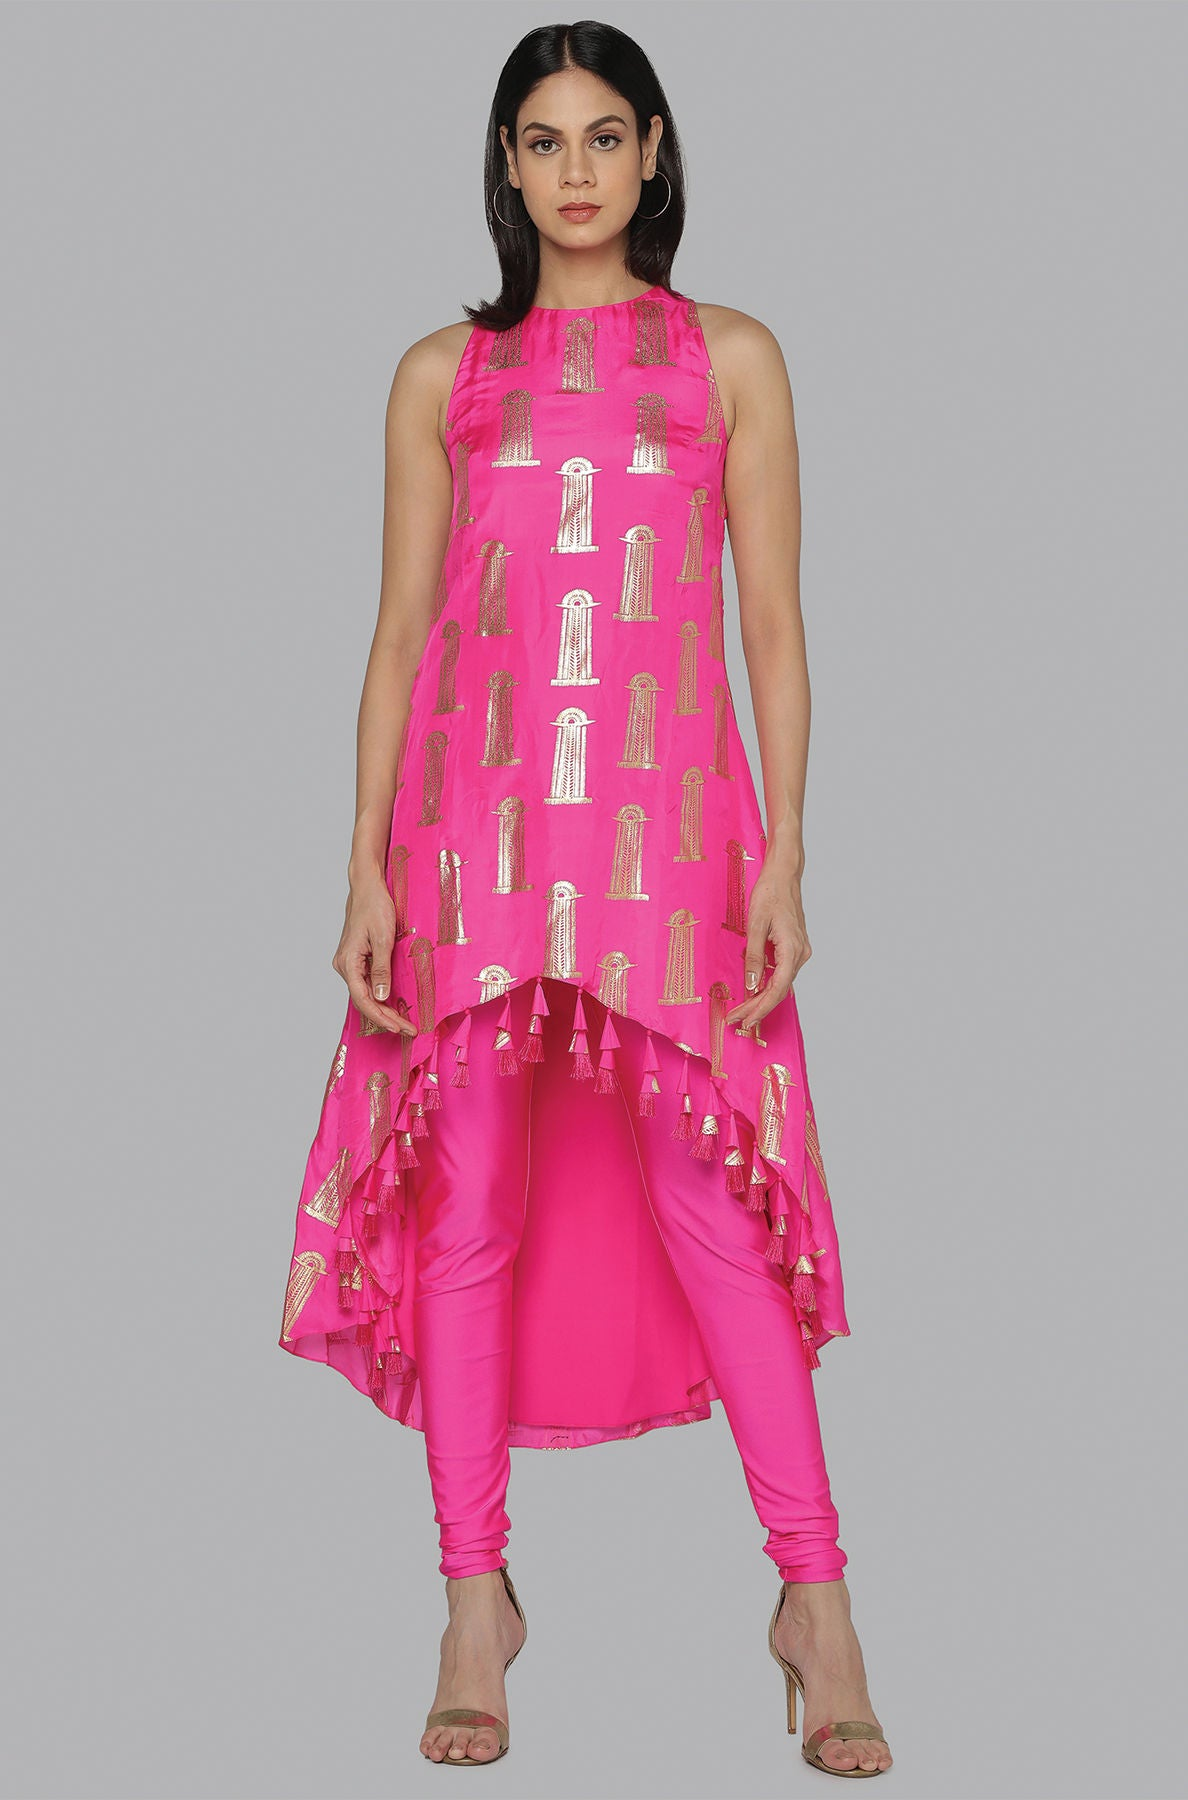 HOT PINK HI-LOW BLOOMING PILLAR TUNIC SET - The Grand Trunk